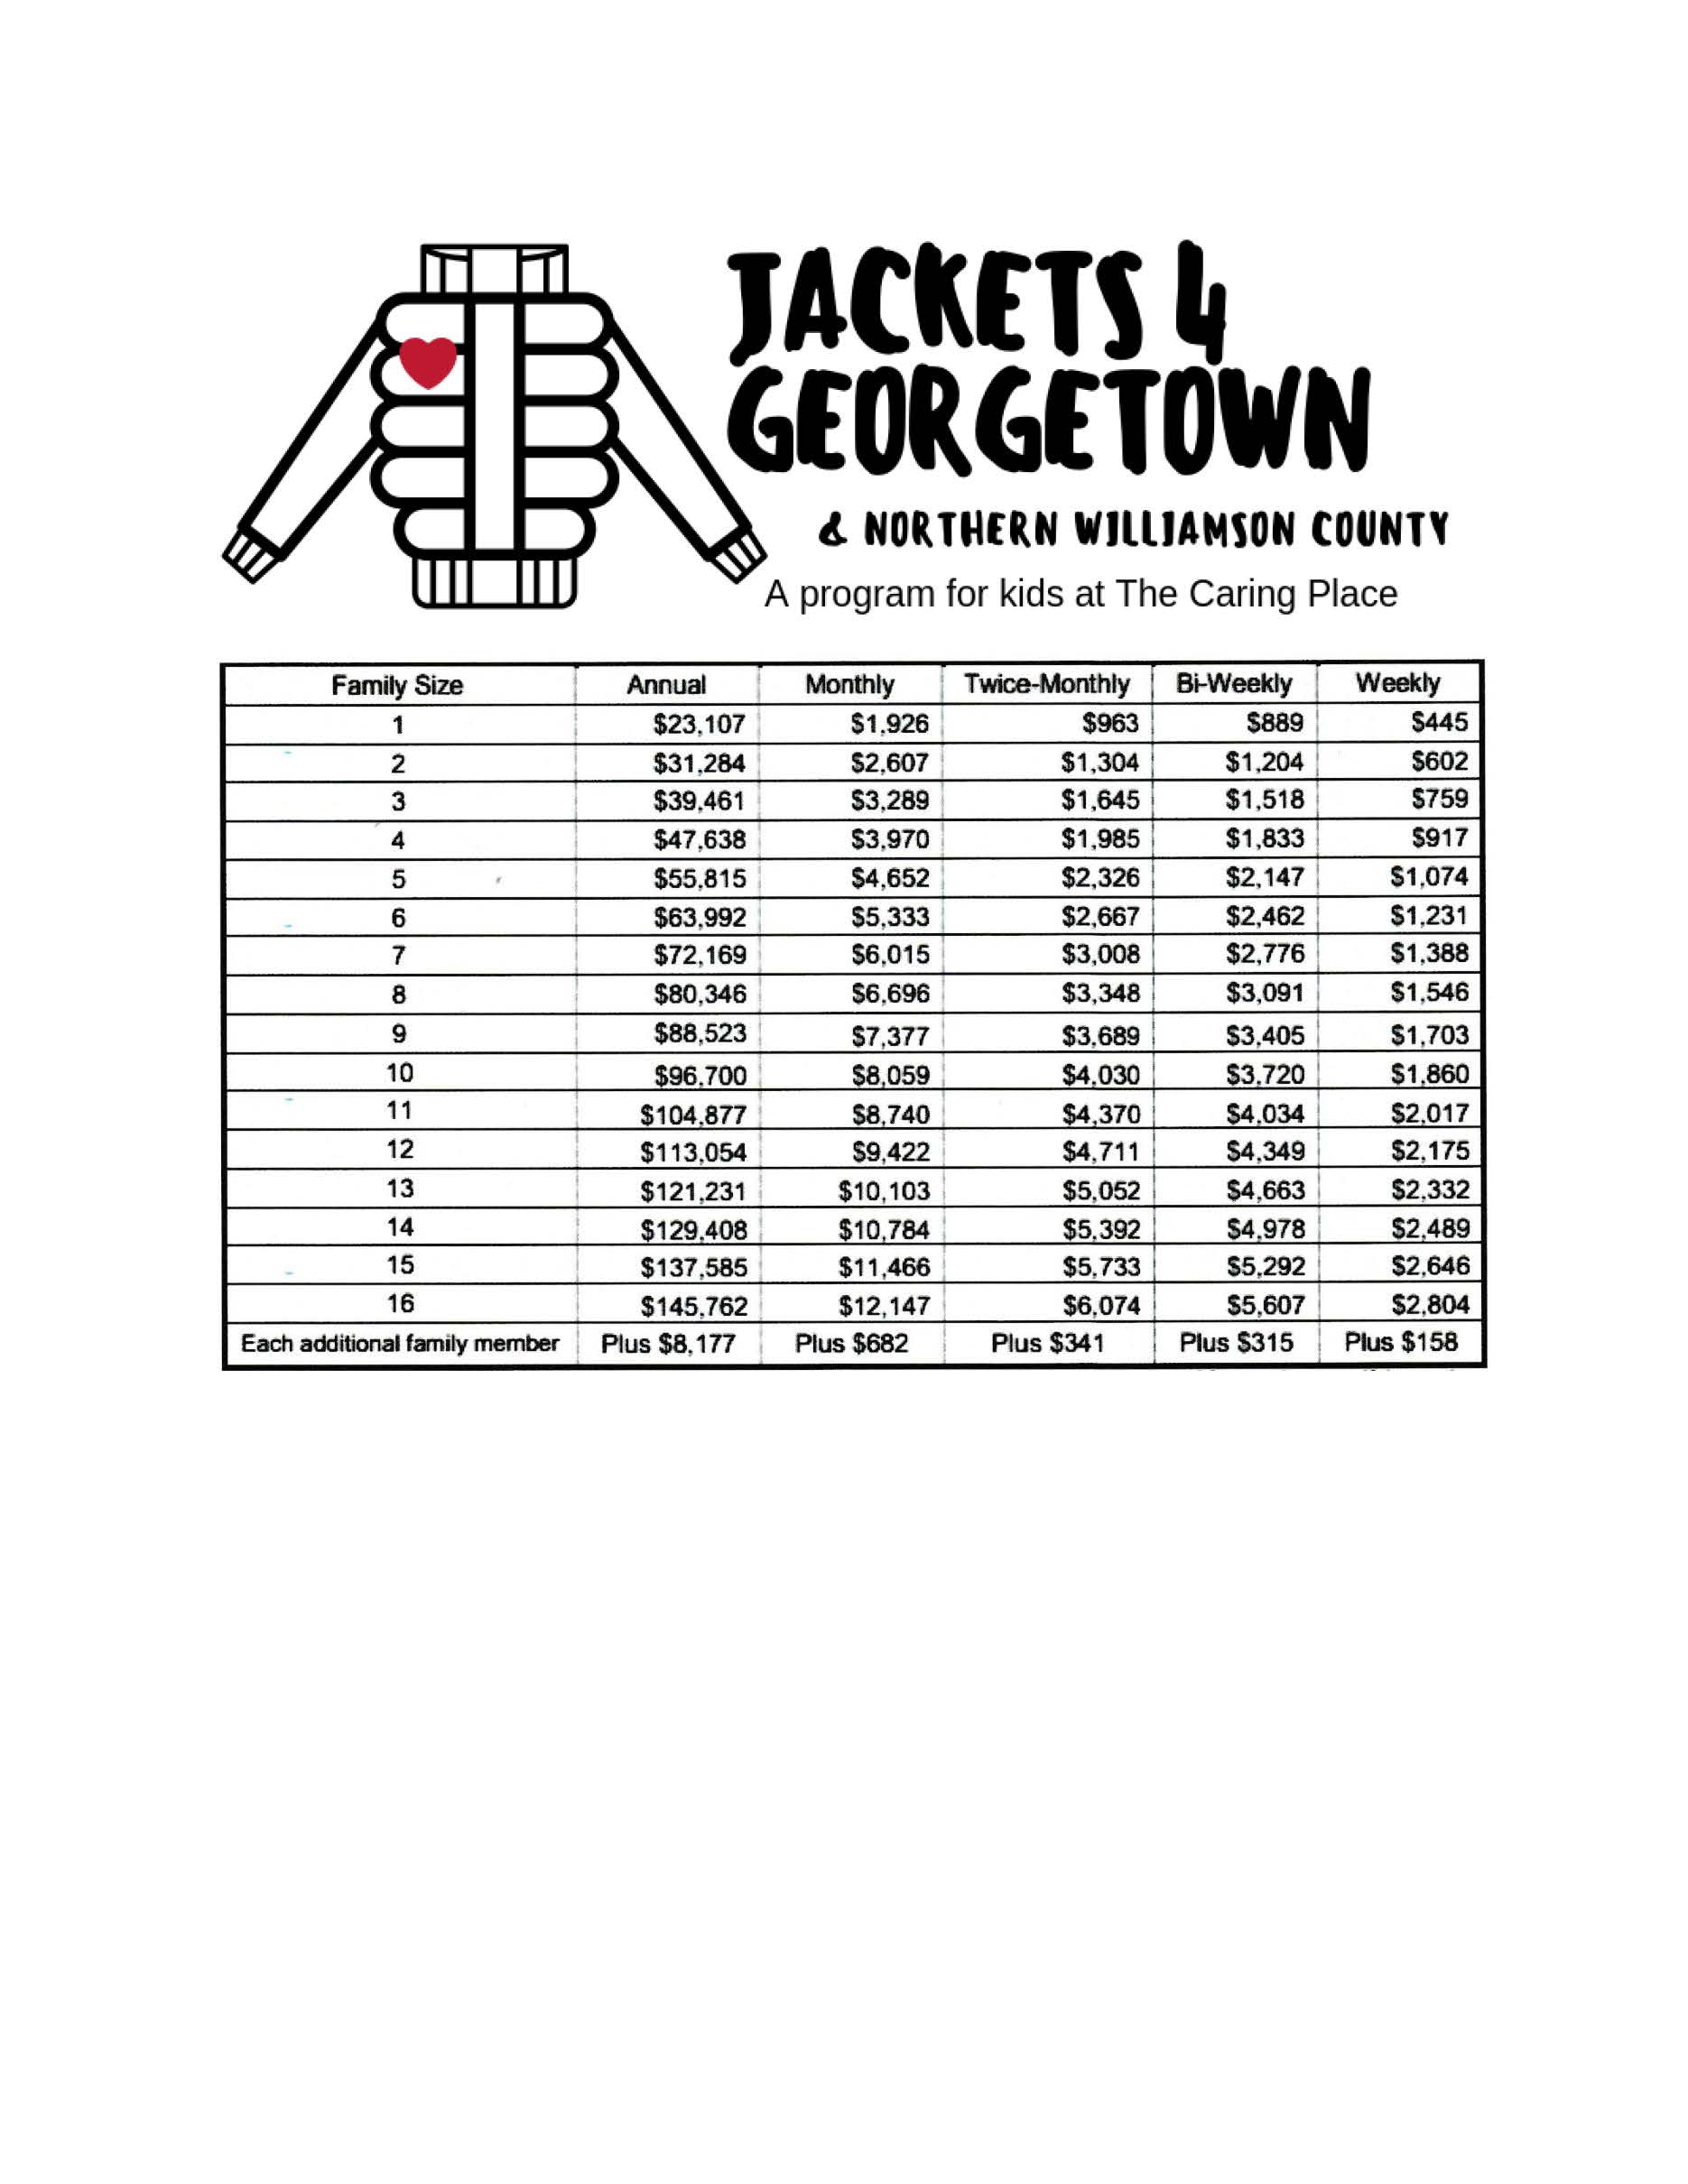 Jackets 4 Georgetown Eligibility Chart